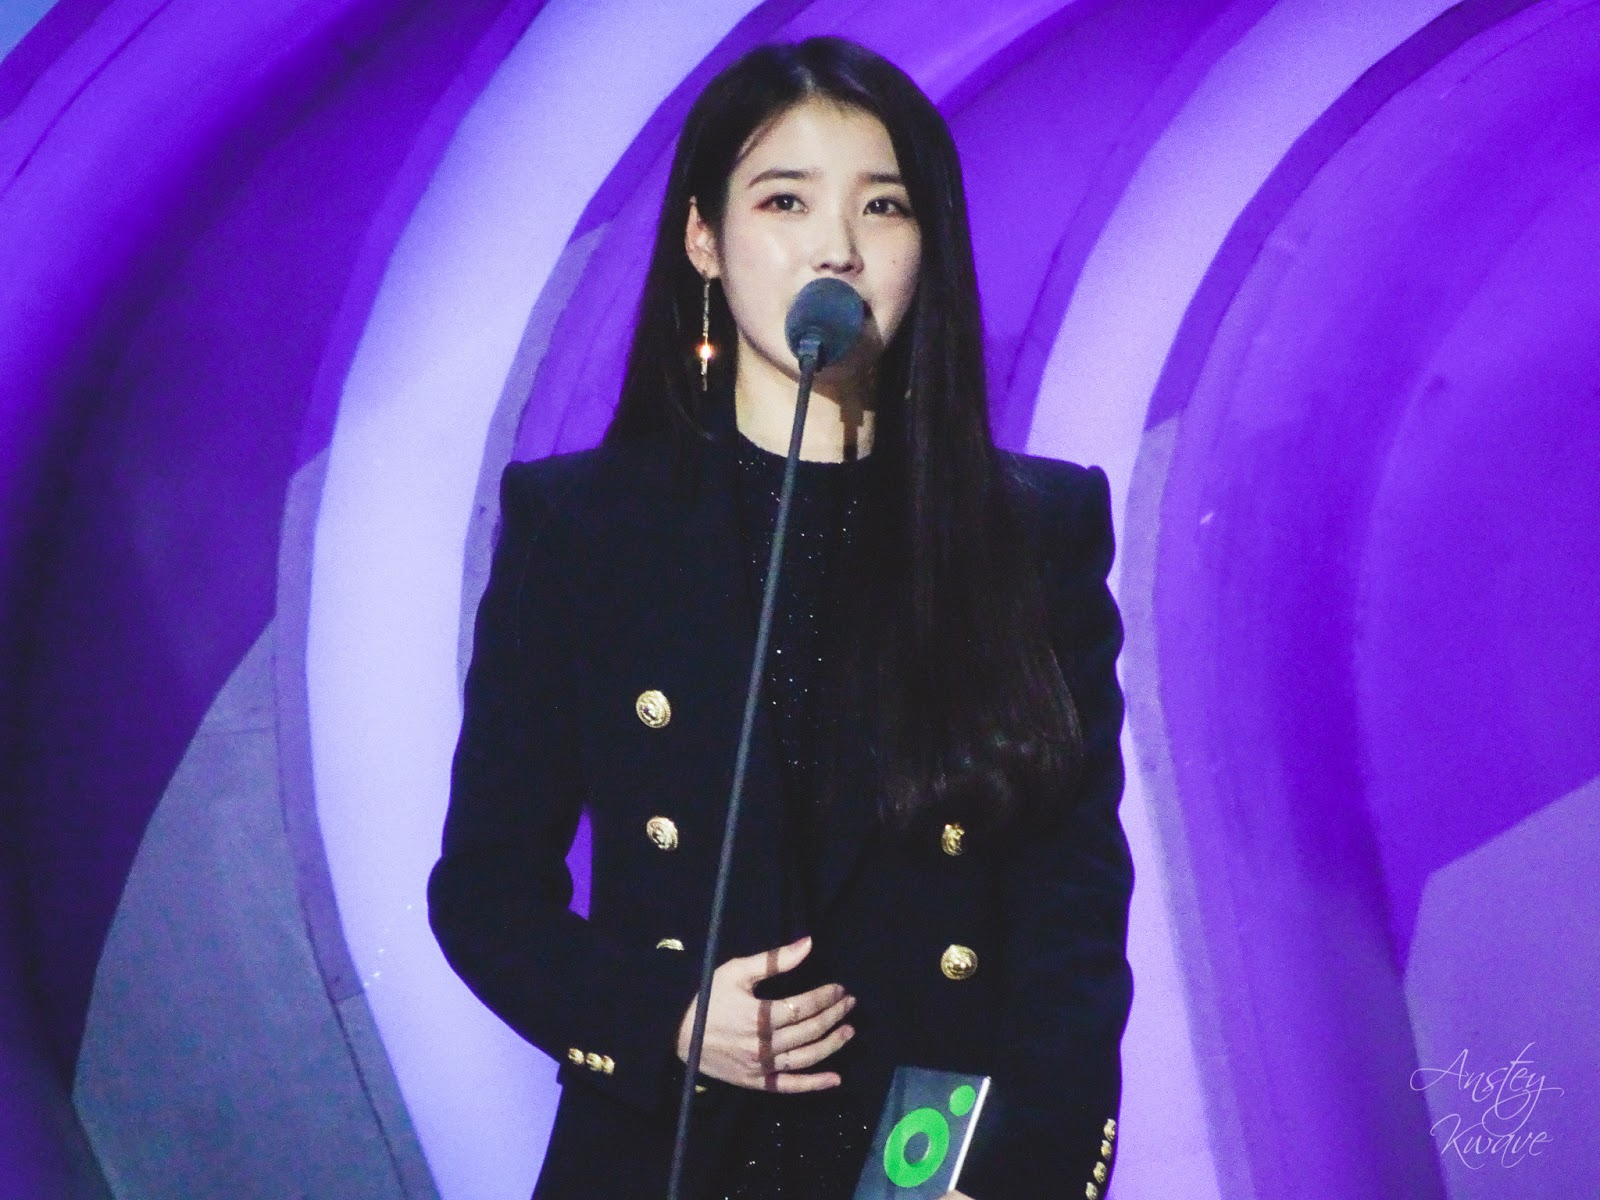 Famous Korean k-pop singer IU receiving award on stage at Melon Music Awards (MMA) 2017 in Seoul, South Korea